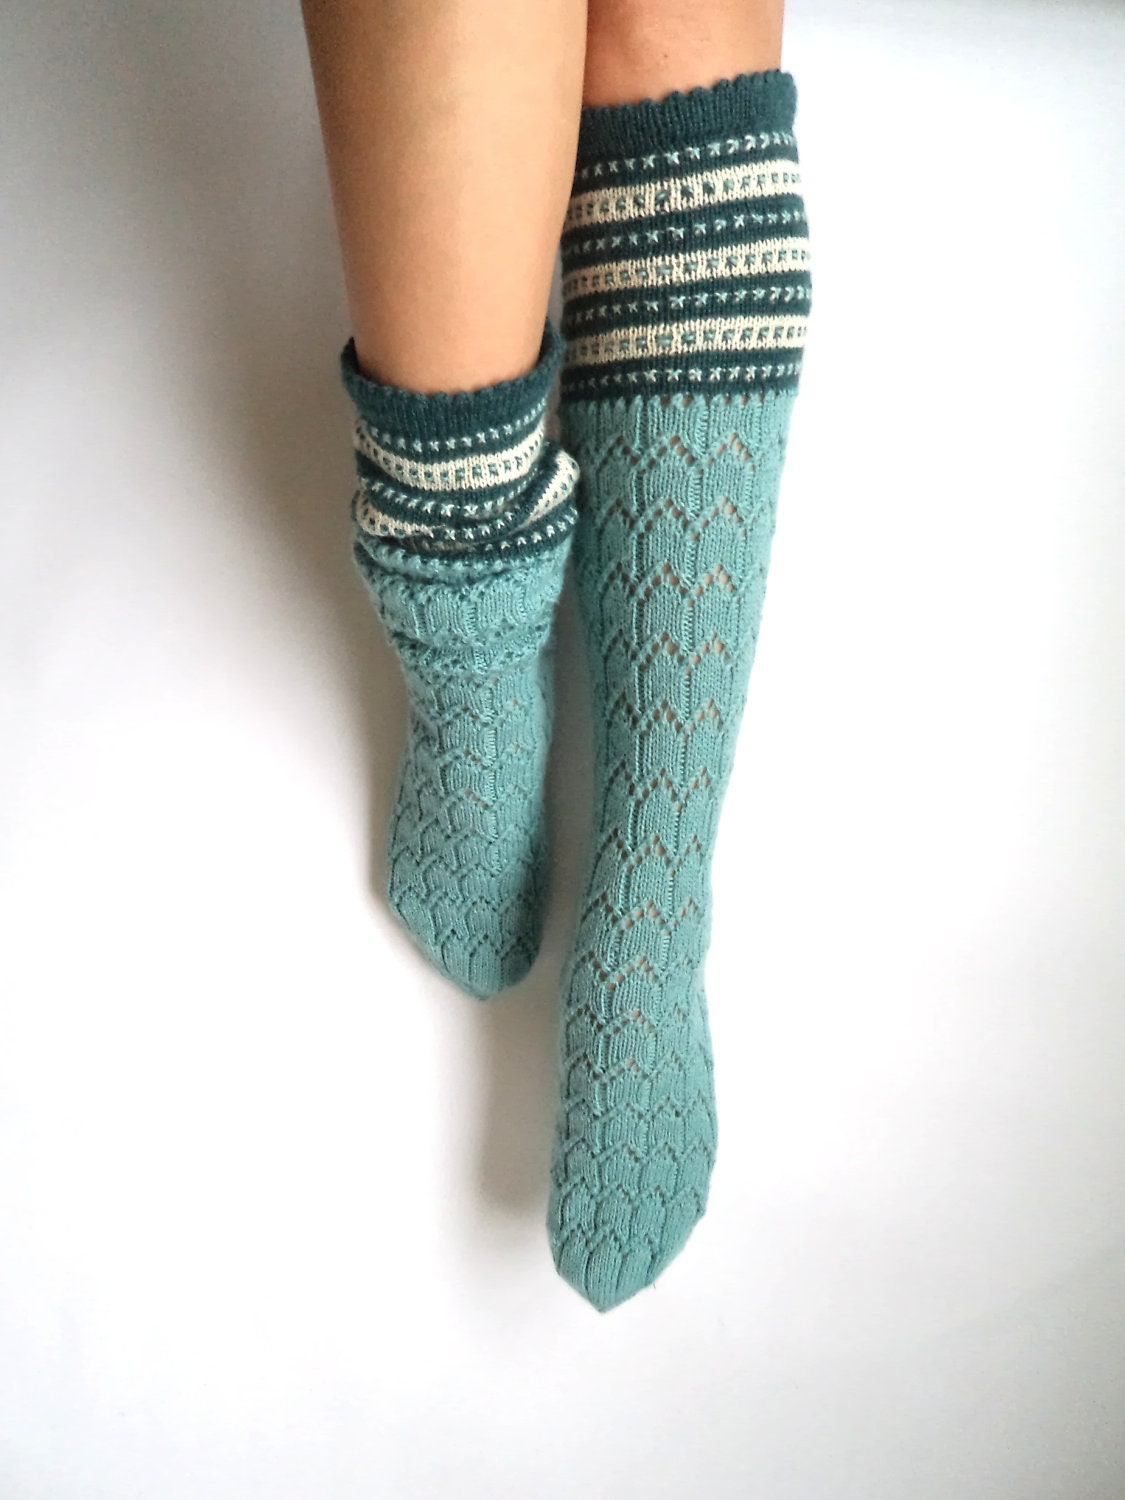 Boot socks. Knee high socks. Leg warmers. Mint green with